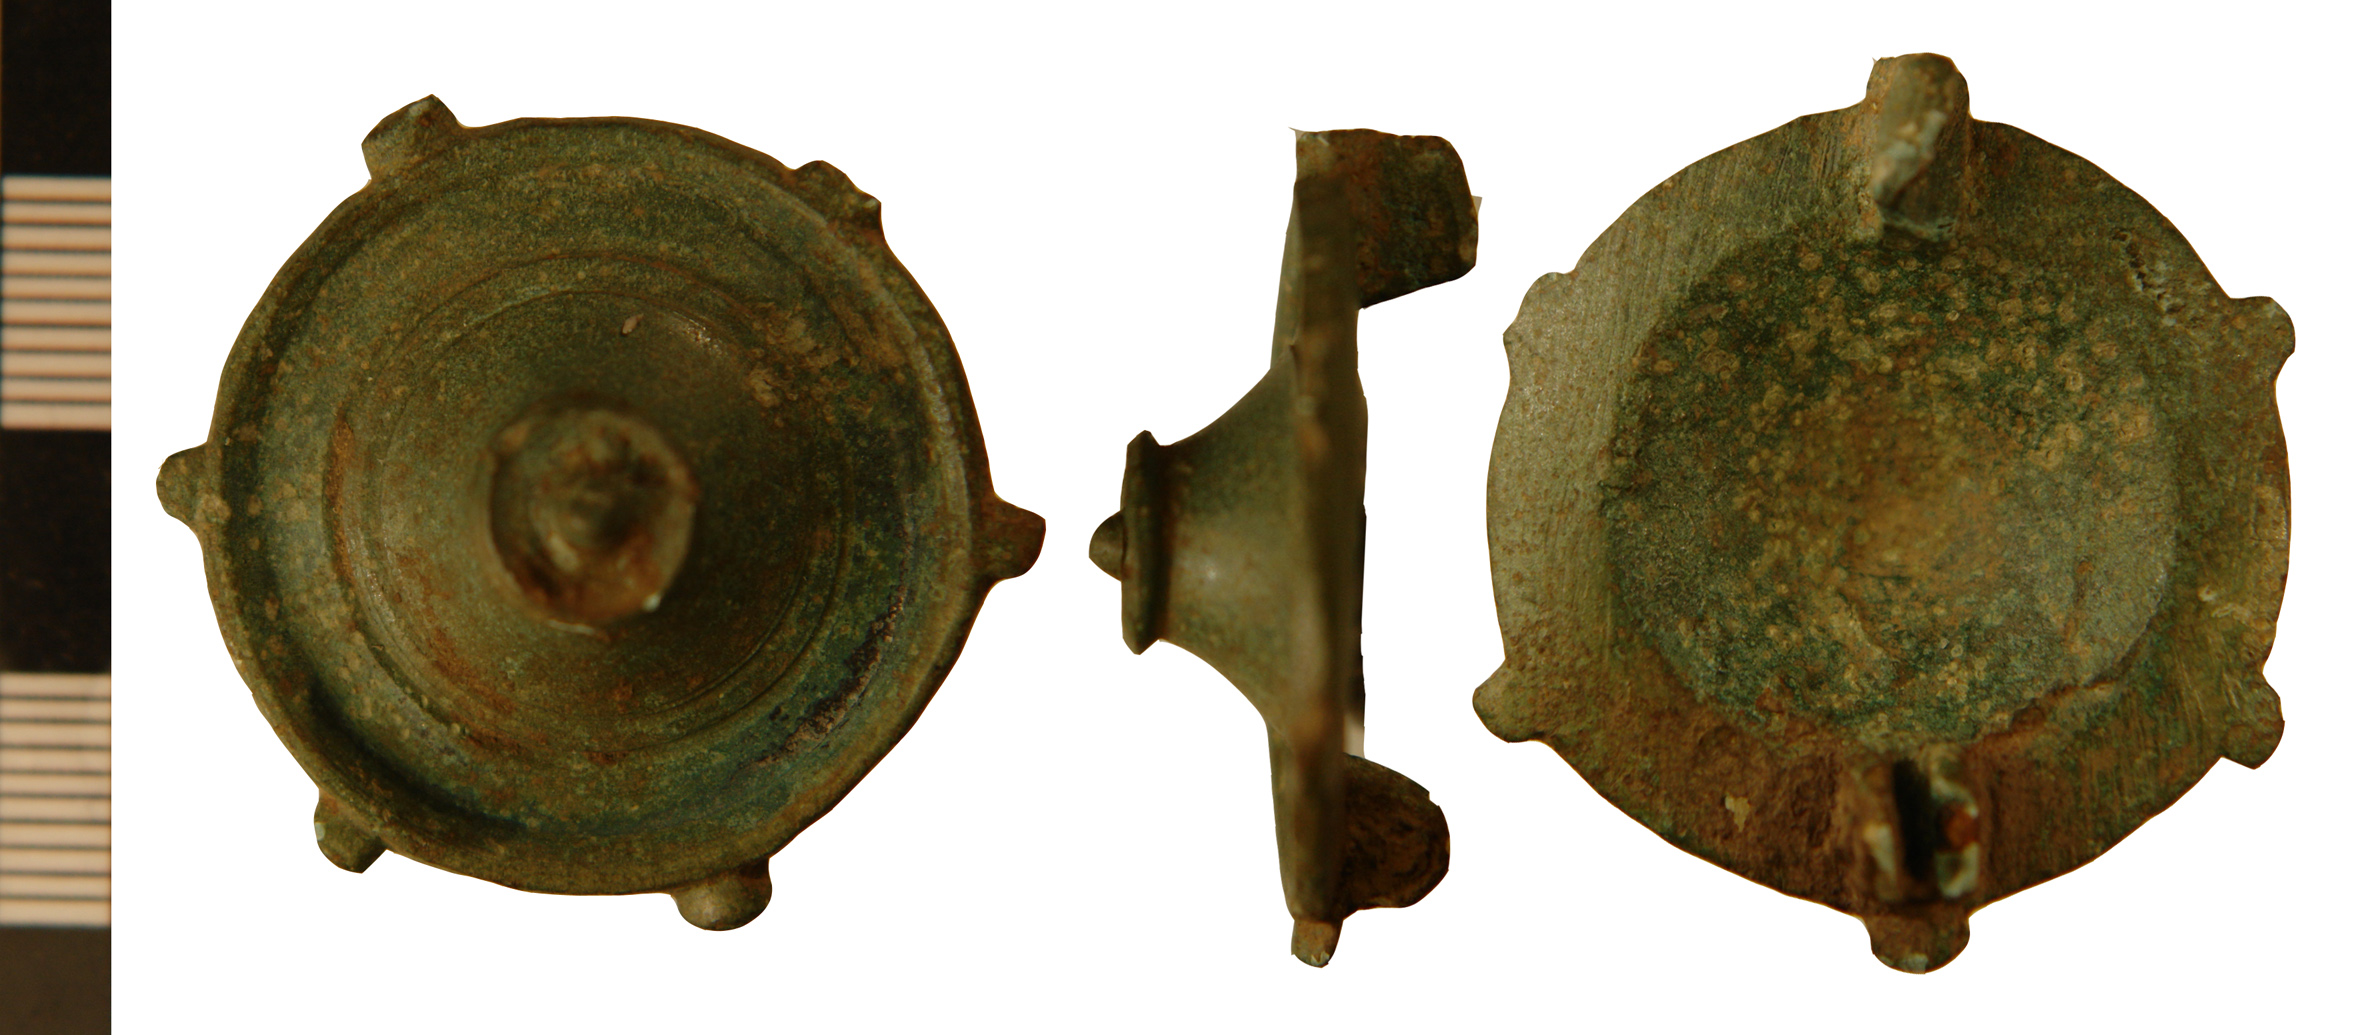 File:Umbo or Tutulus brooch from Ashby cum Fenby (FindID 484235).jpg